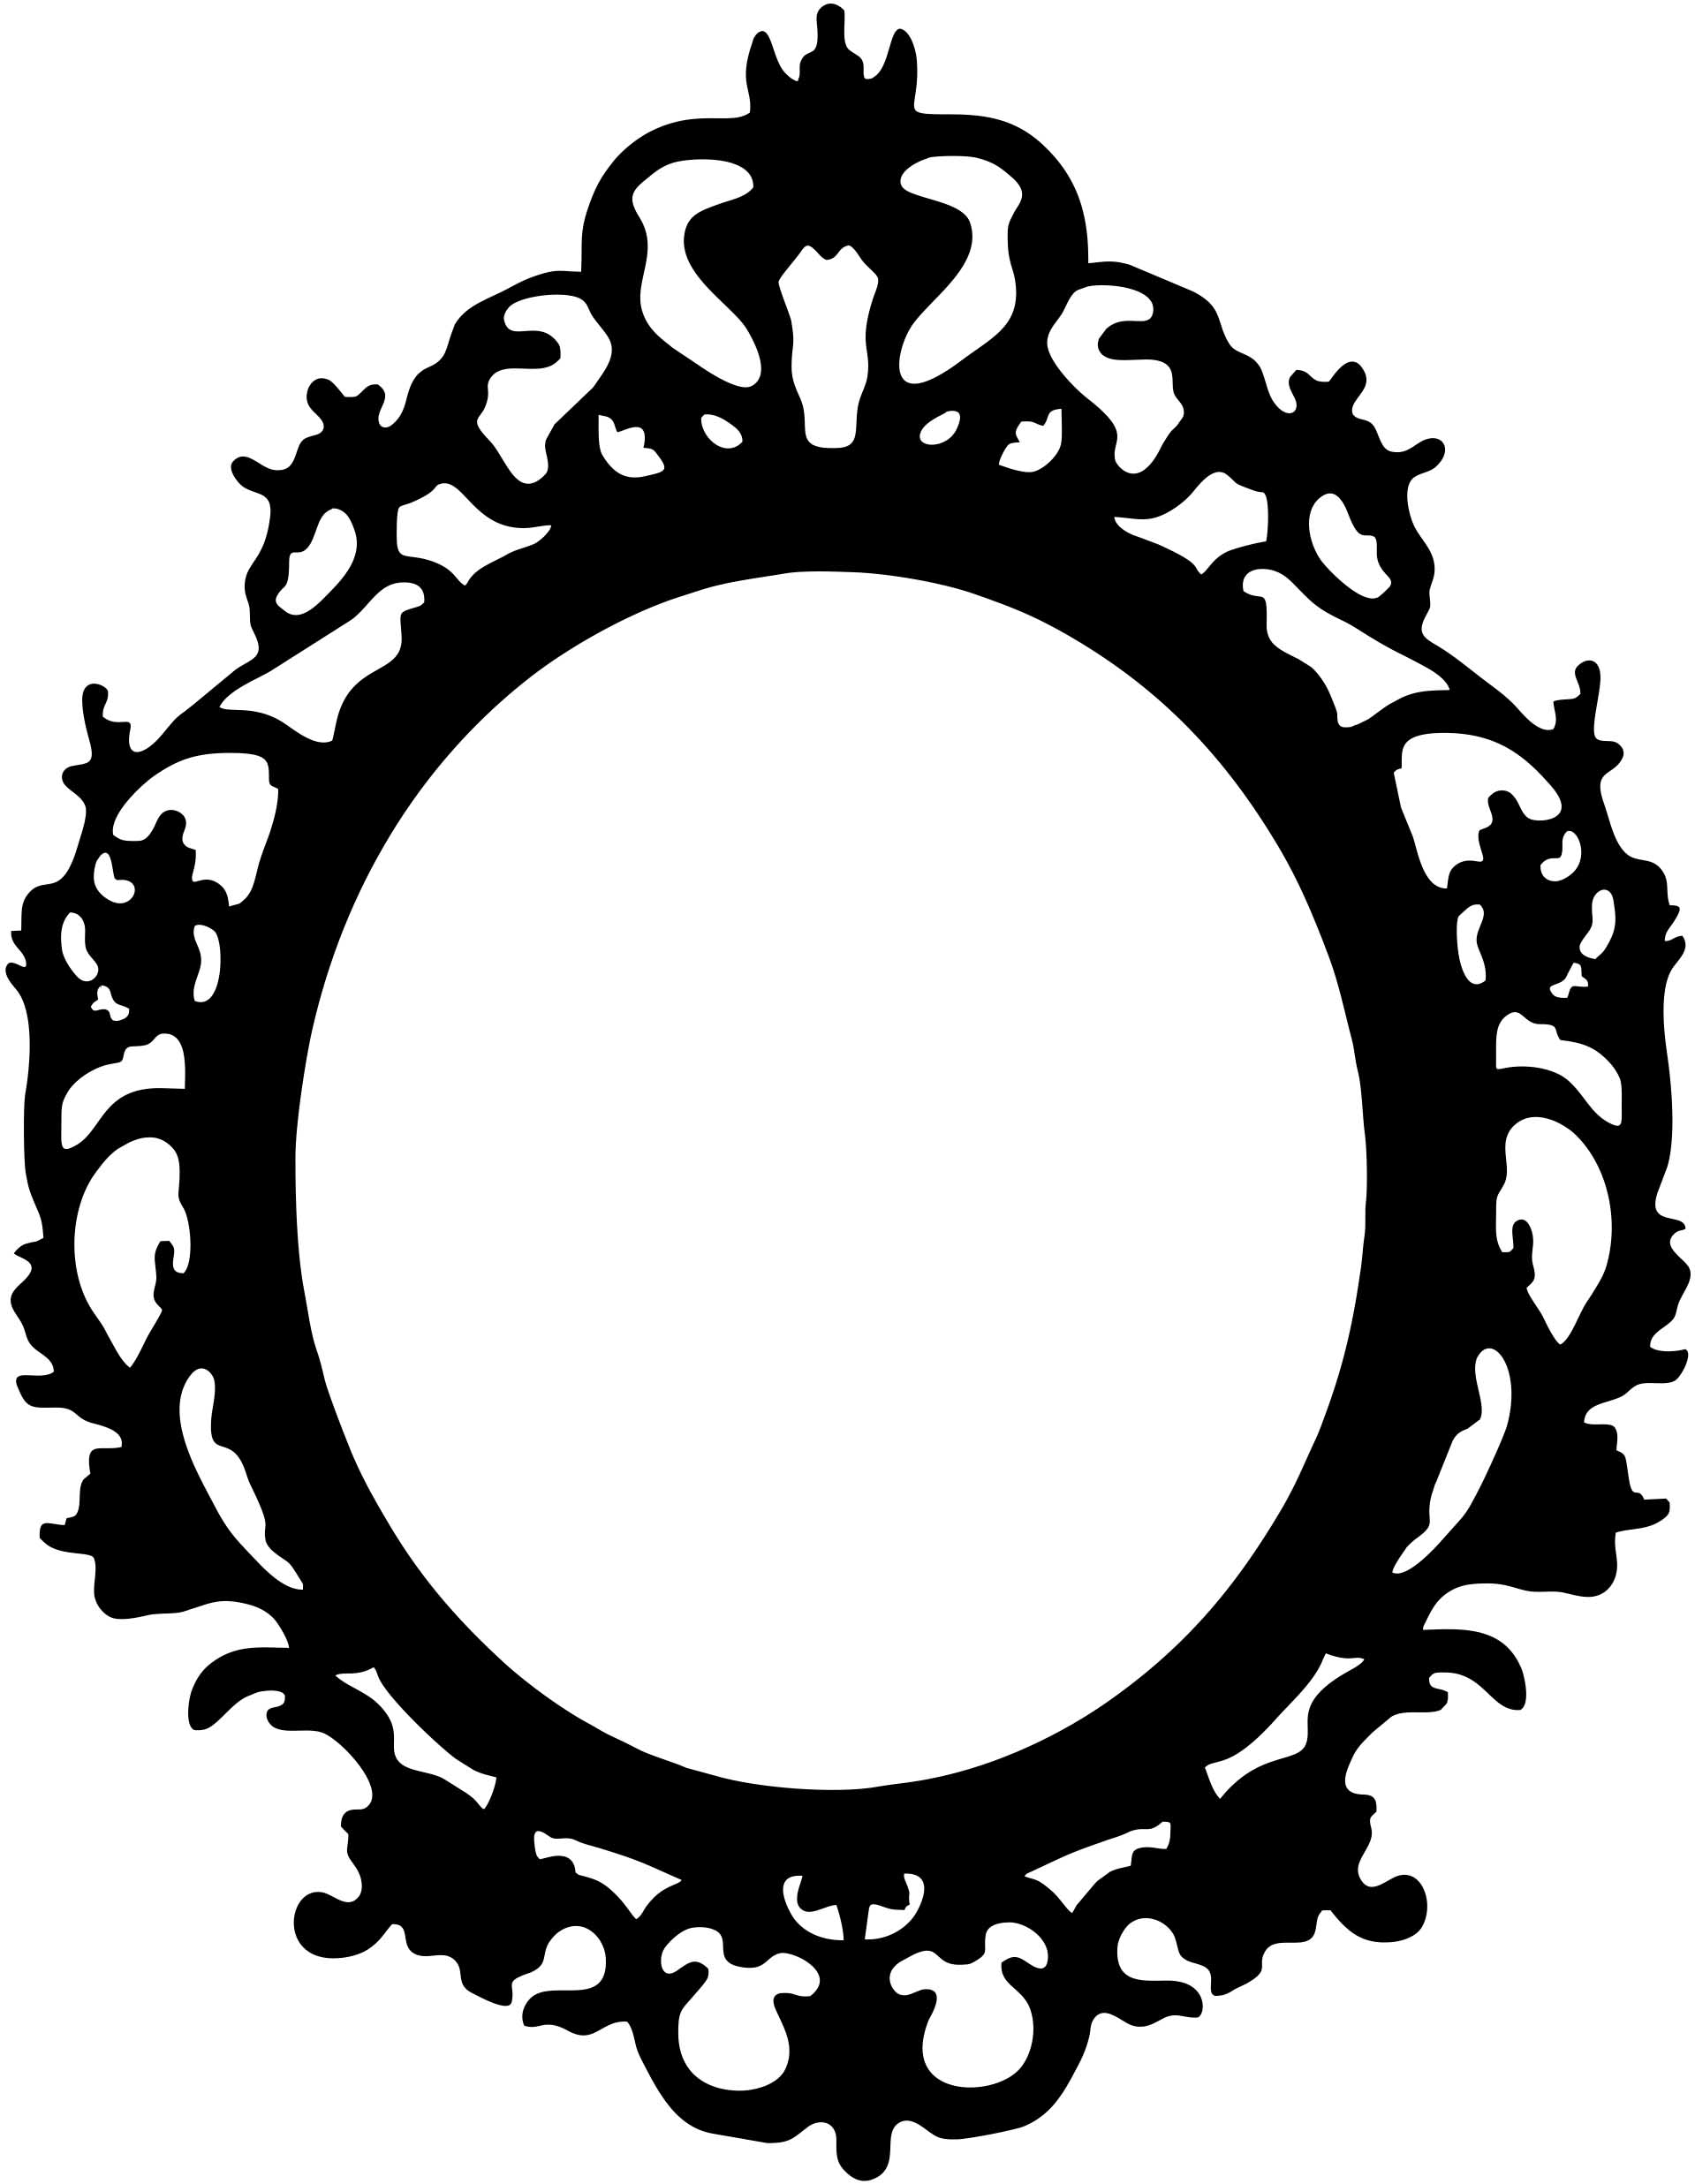 Free Oval Frame Cliparts, Download Free Clip Art, Free Clip.